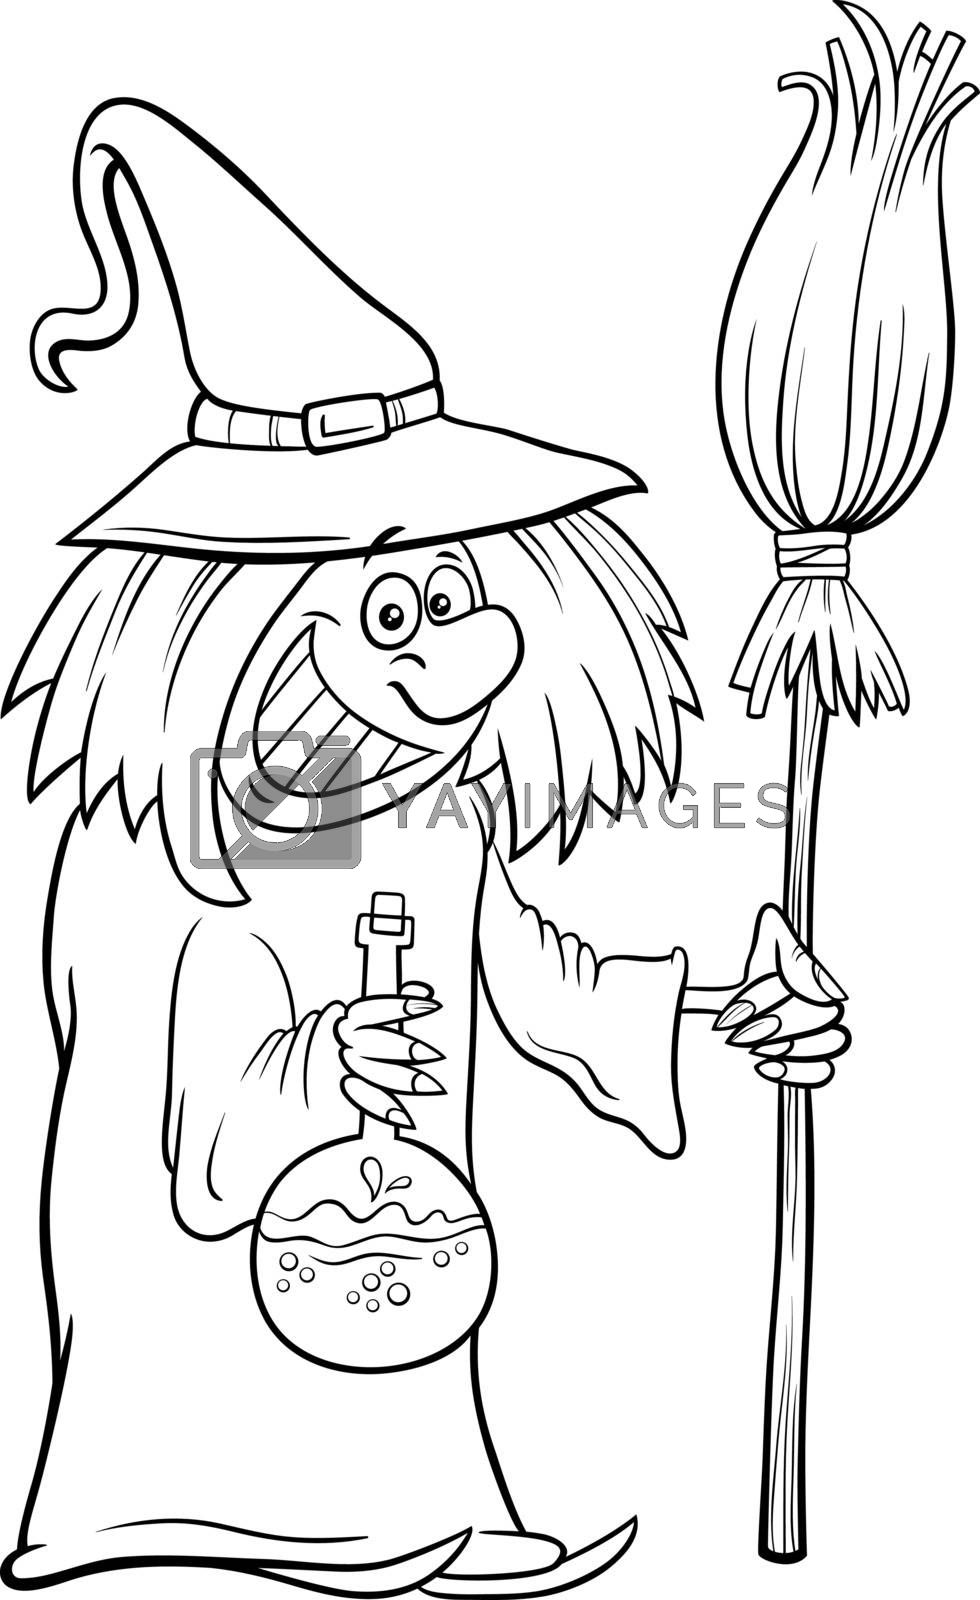 Black and White Cartoon Illustration of Funny Witch with Broom Halloween Character Coloring Book Page